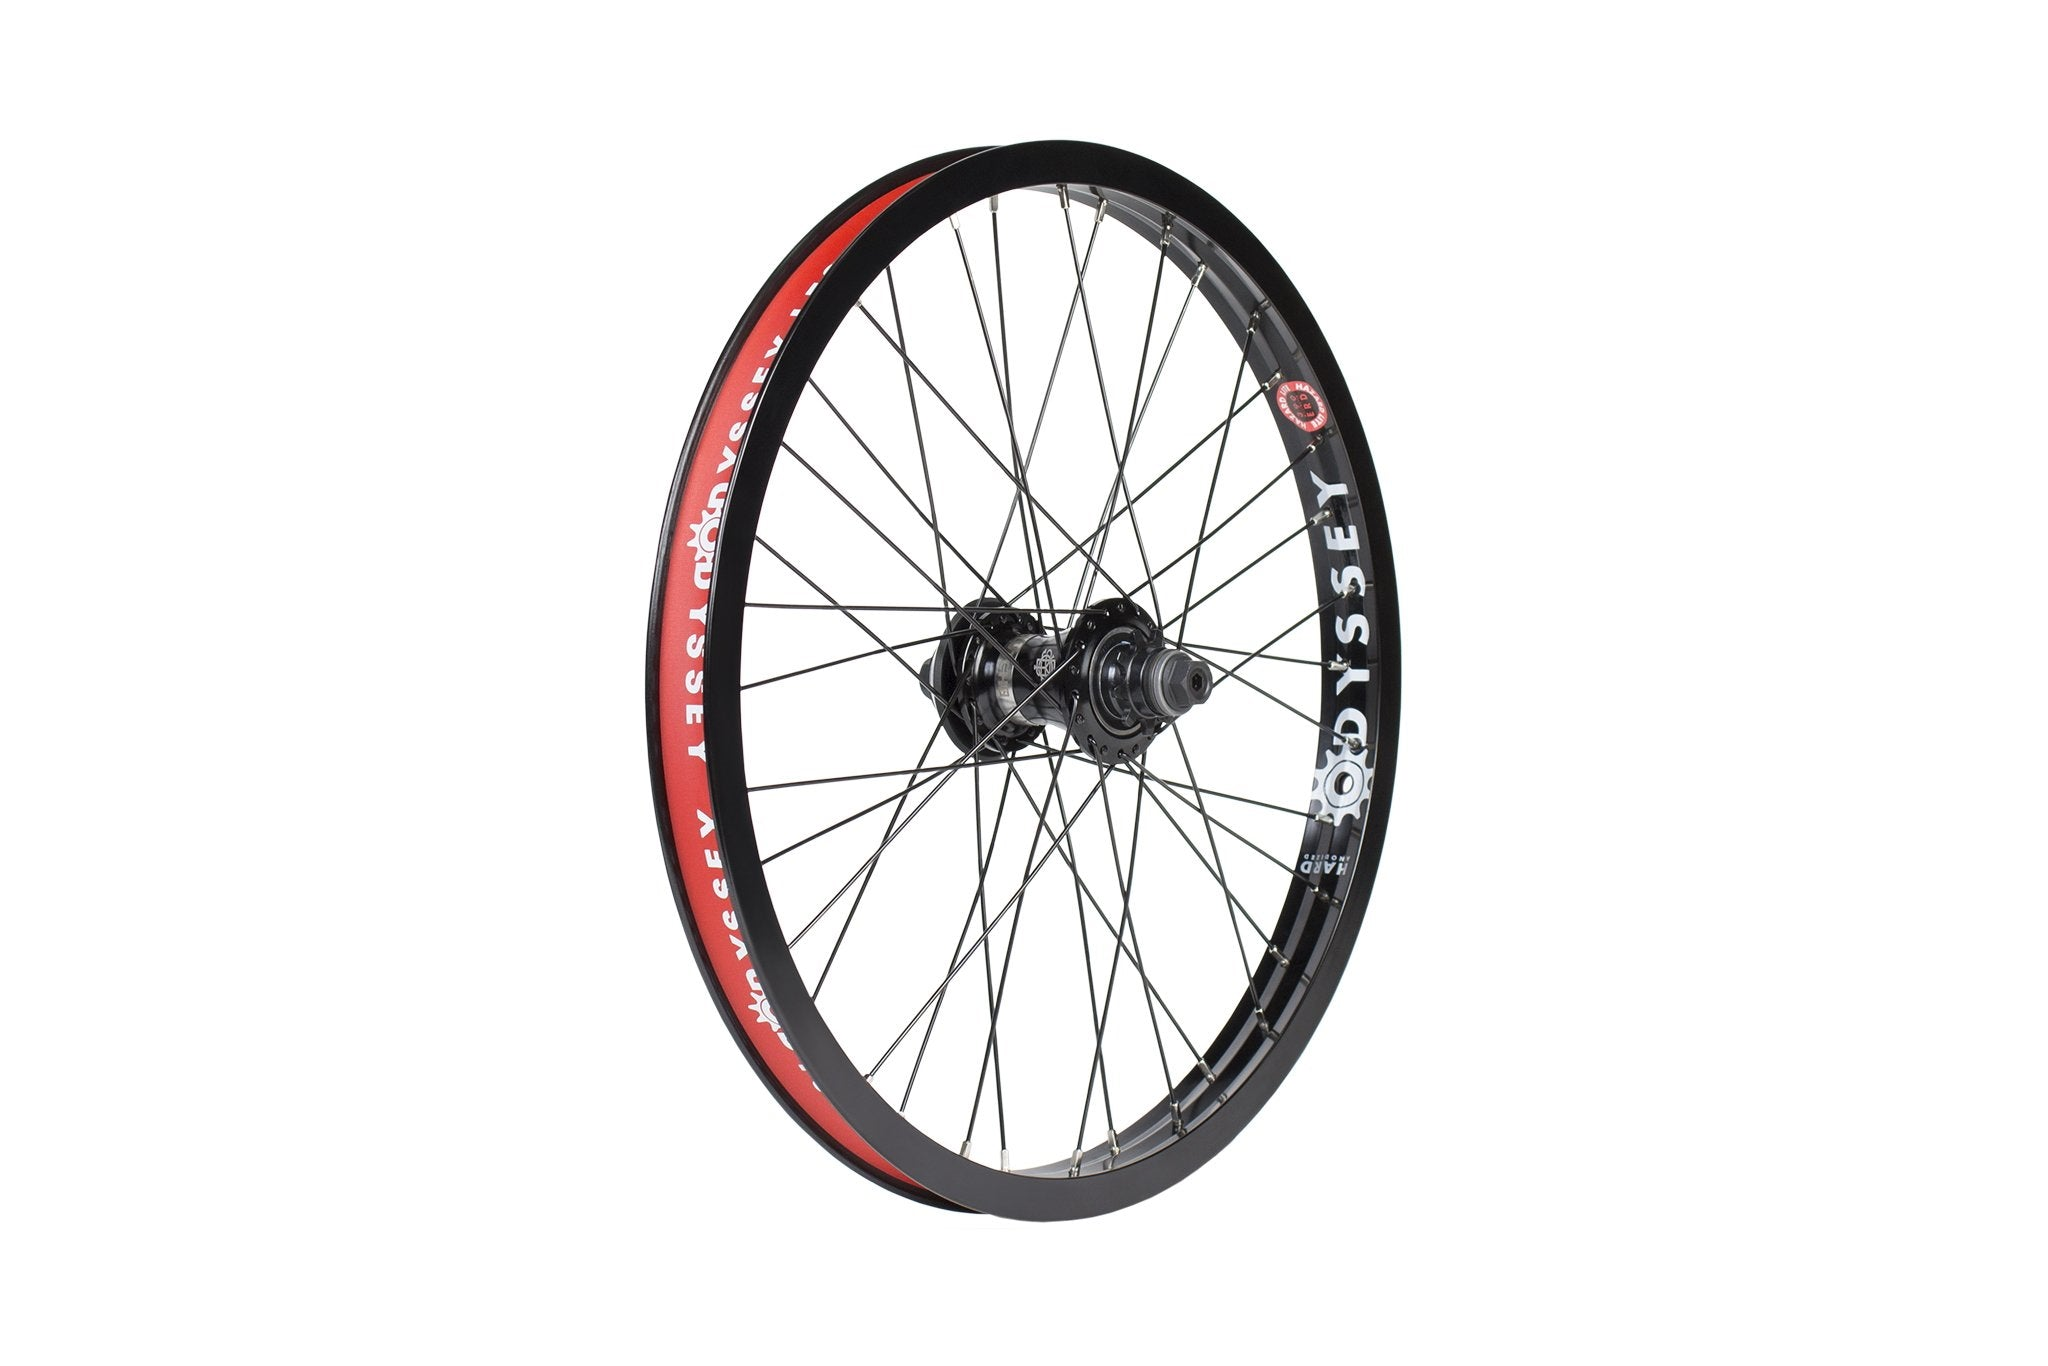 Odyssey Clutch V2 Freecoaster Laufrad / Wheel Black